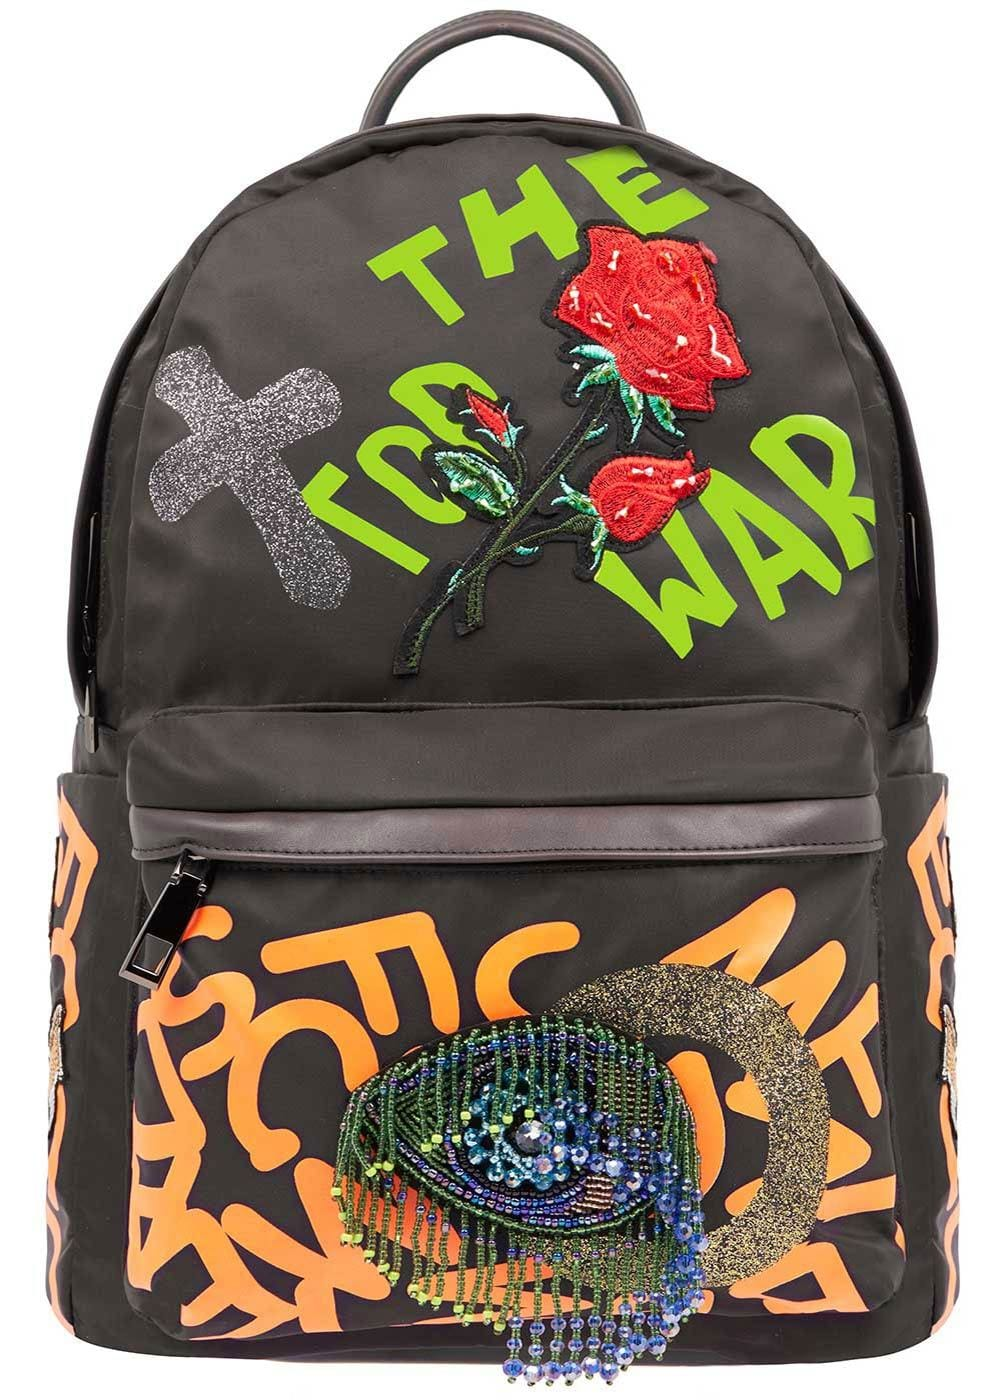 Teenzshop Girls Grey Graffiti Backpack-Front